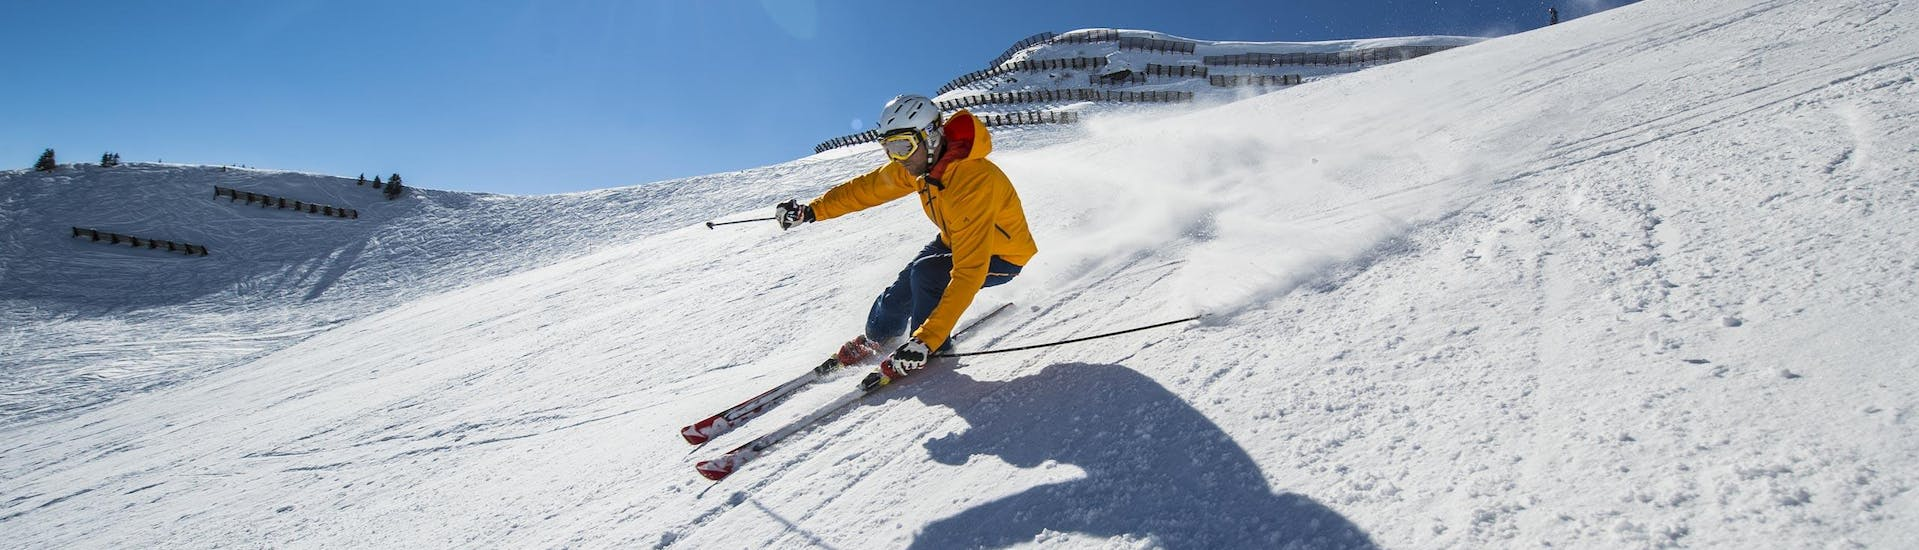 Private Ski Lessons for Adults of All Levels: A skier is skiing down a sunny ski slope while participating in an activity offered by Ski school Ski Zenit.